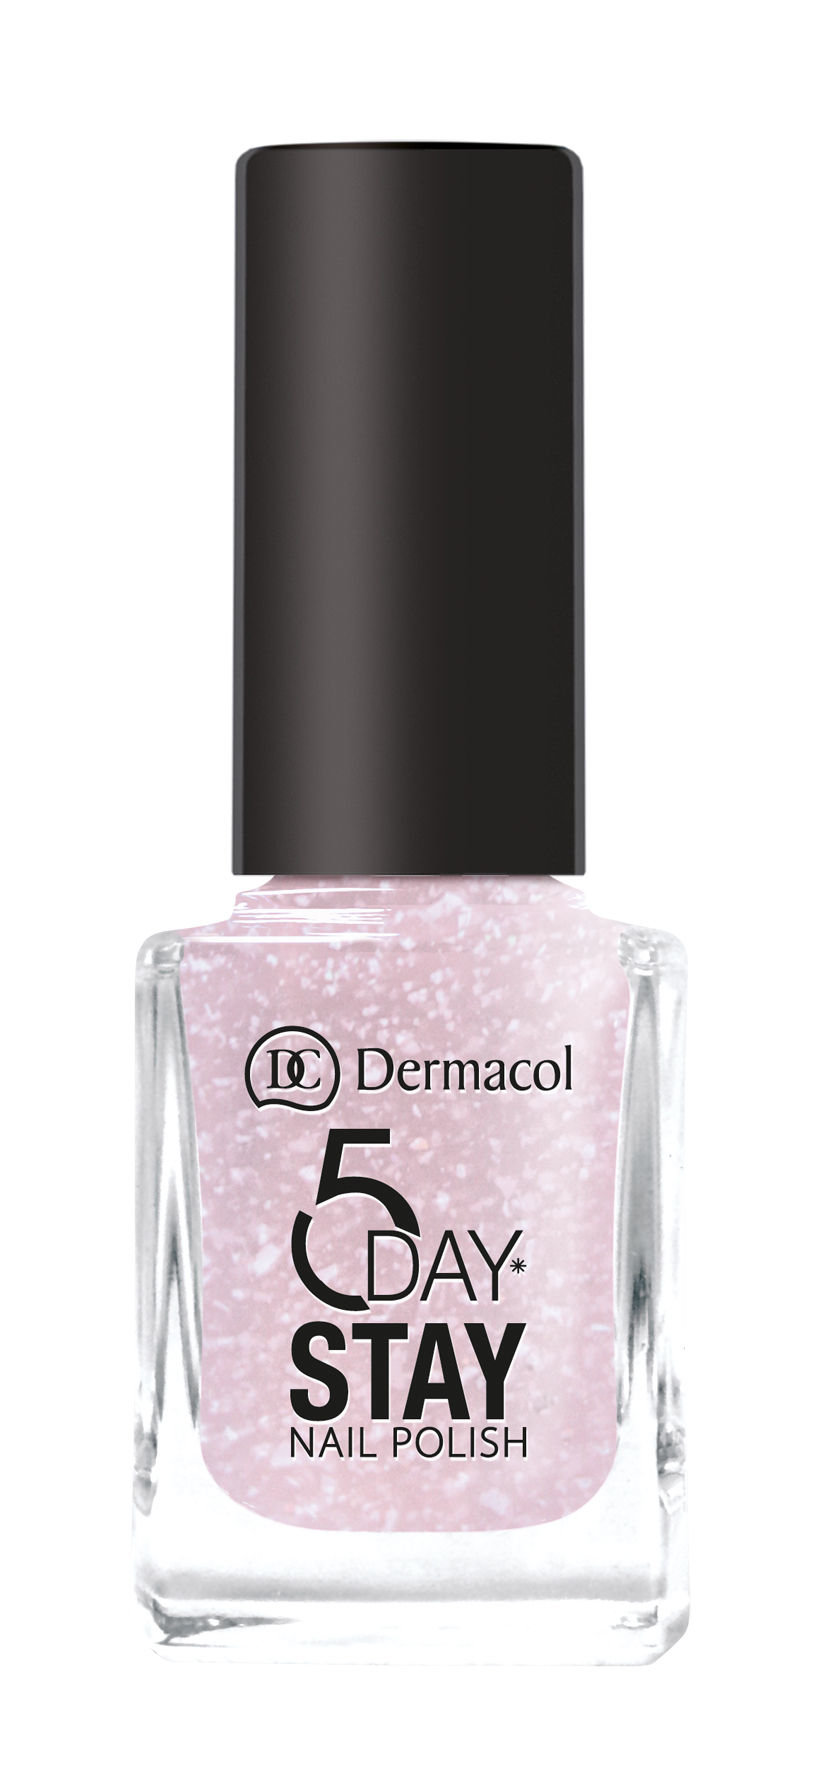 Dermacol 5 Day Stay Cosmetic 11ml 04 Nude Glam